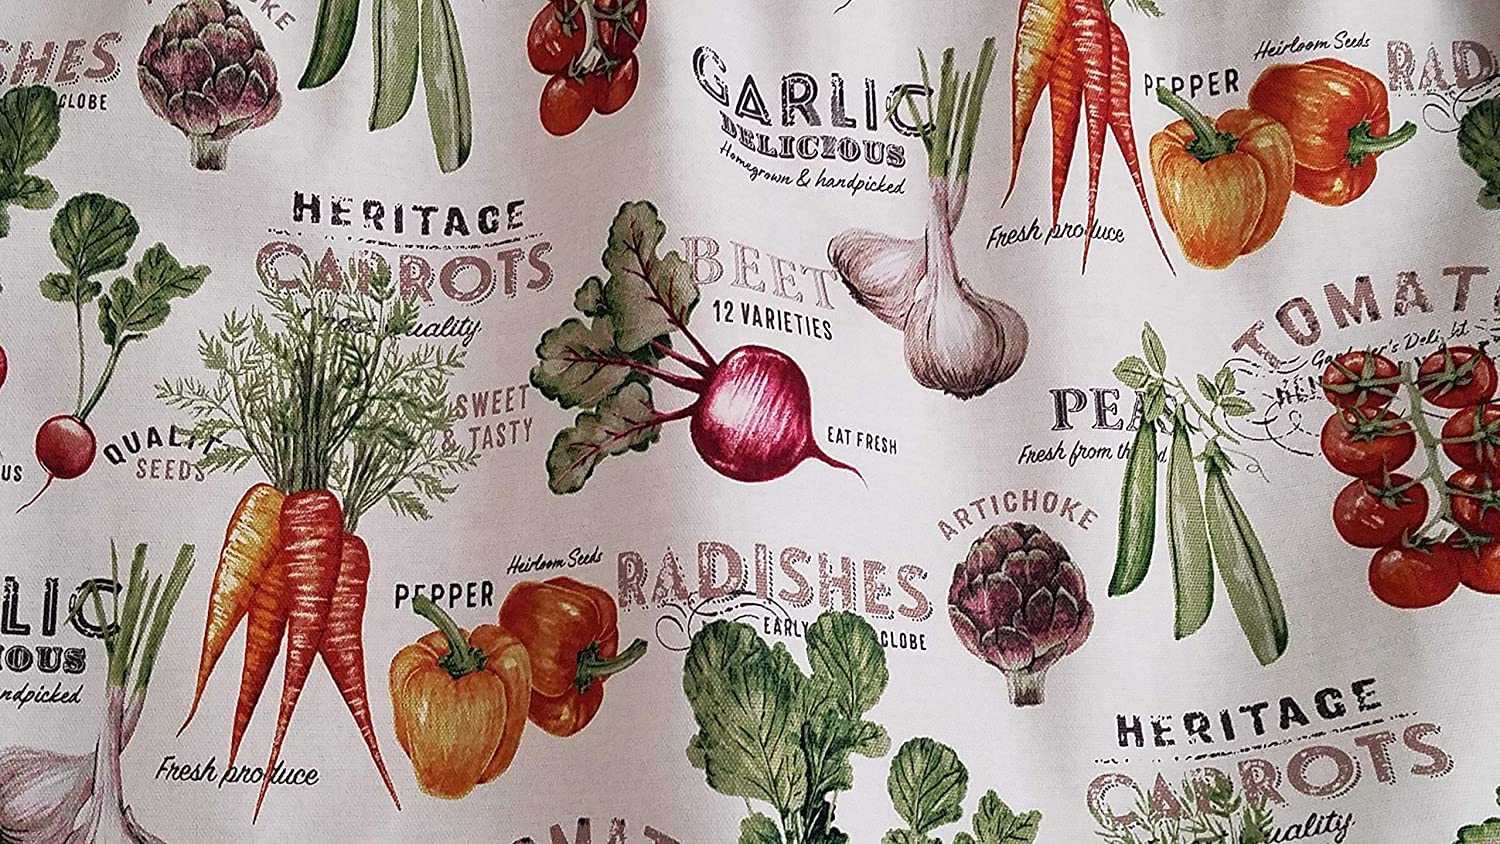 Vegetable Kitchen Curtain 42 43 Inches Wide X 15 Inches Long Kitchen Curtain Farm Themed Kitchen Curtain Farm Fresh Kitchen Curtain Bell Peppers Tomatoes Carrots White Kitchen Curtain Handmade Products Curtains Blinds Shutters